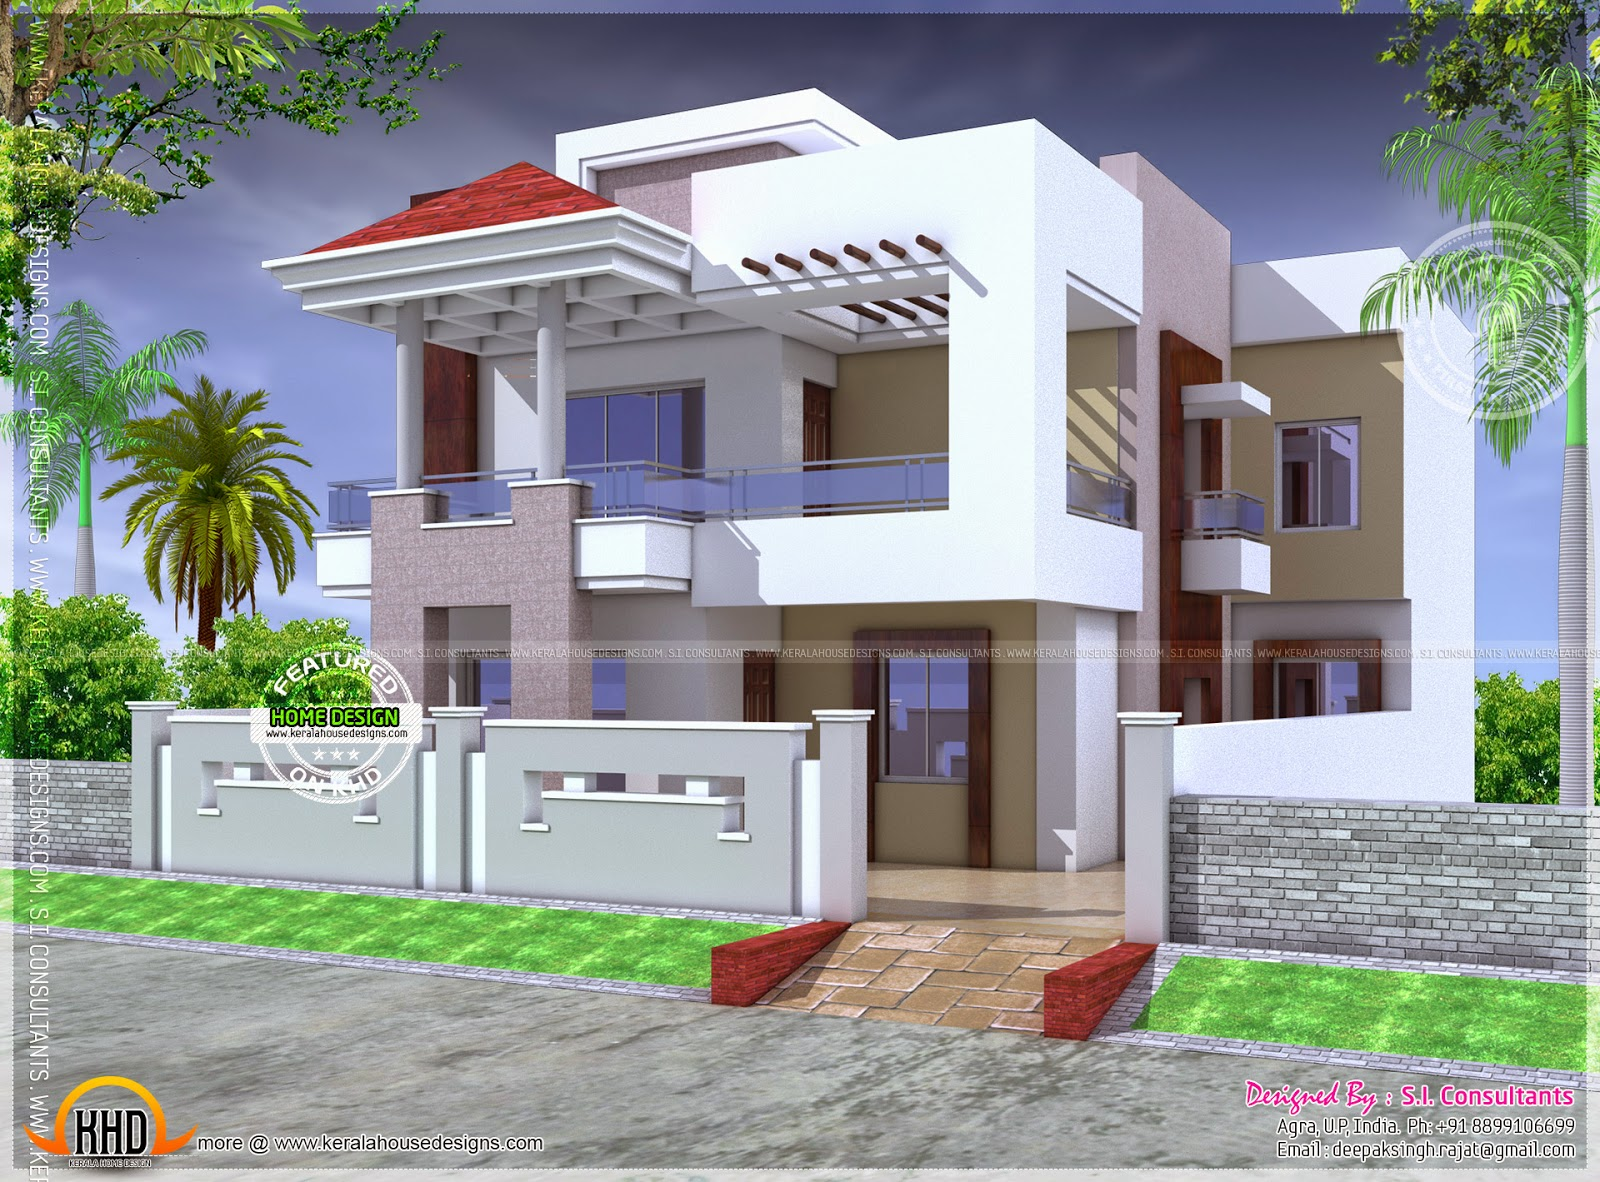 Indian Home Design sq ft total area sq ft bedrooms design style